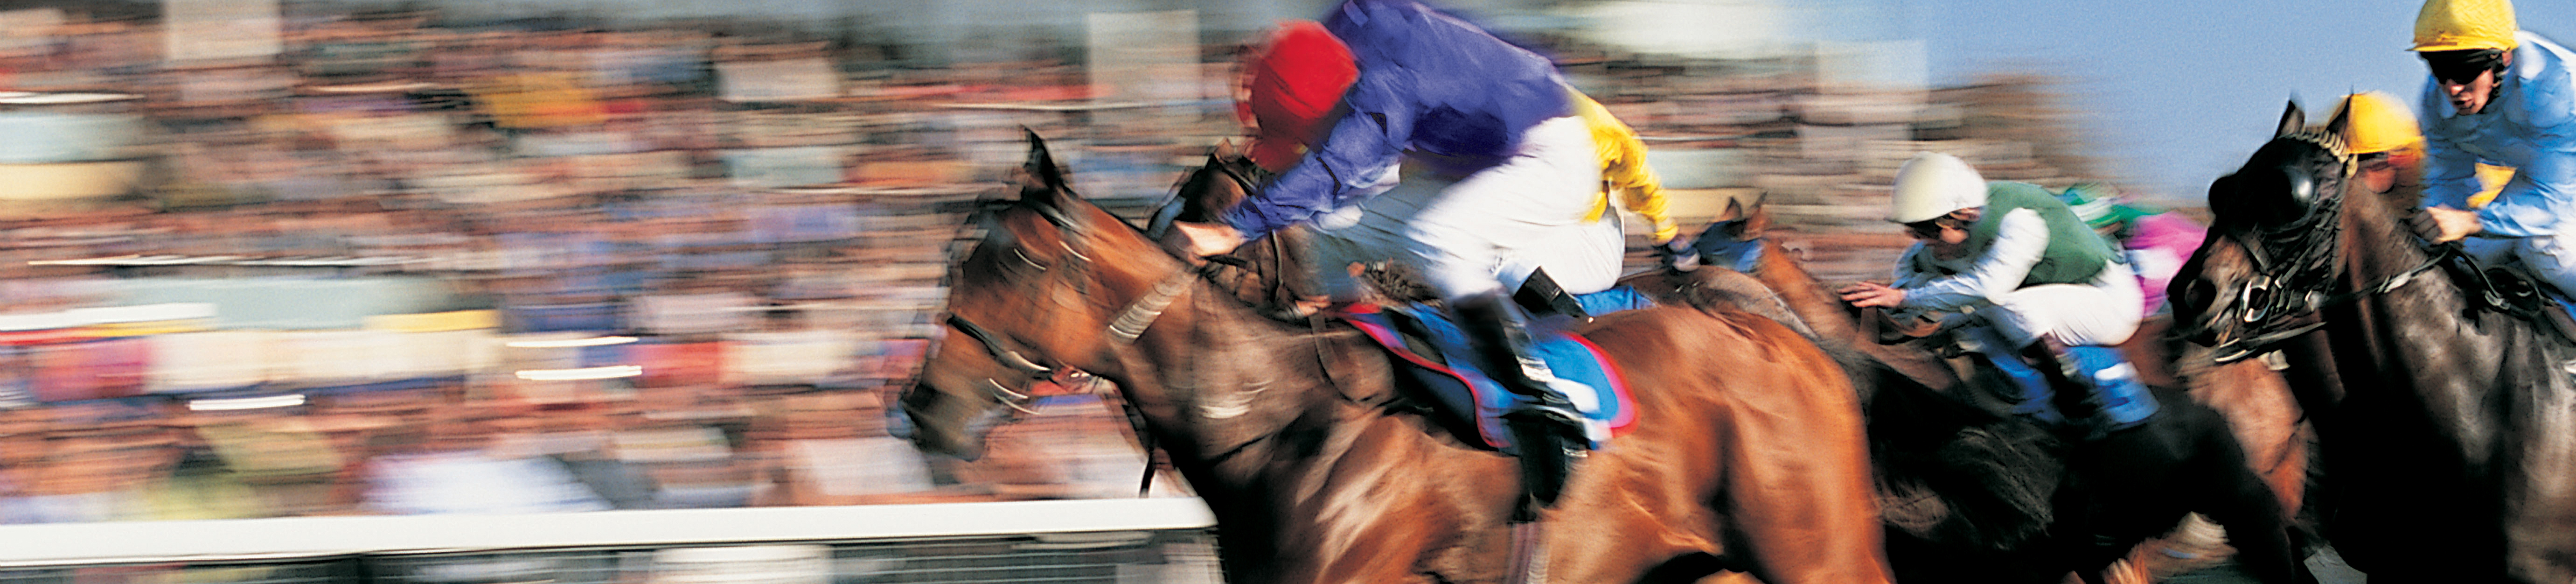 Pune race course betting odds irish 2000 guineas 2021 betting lines